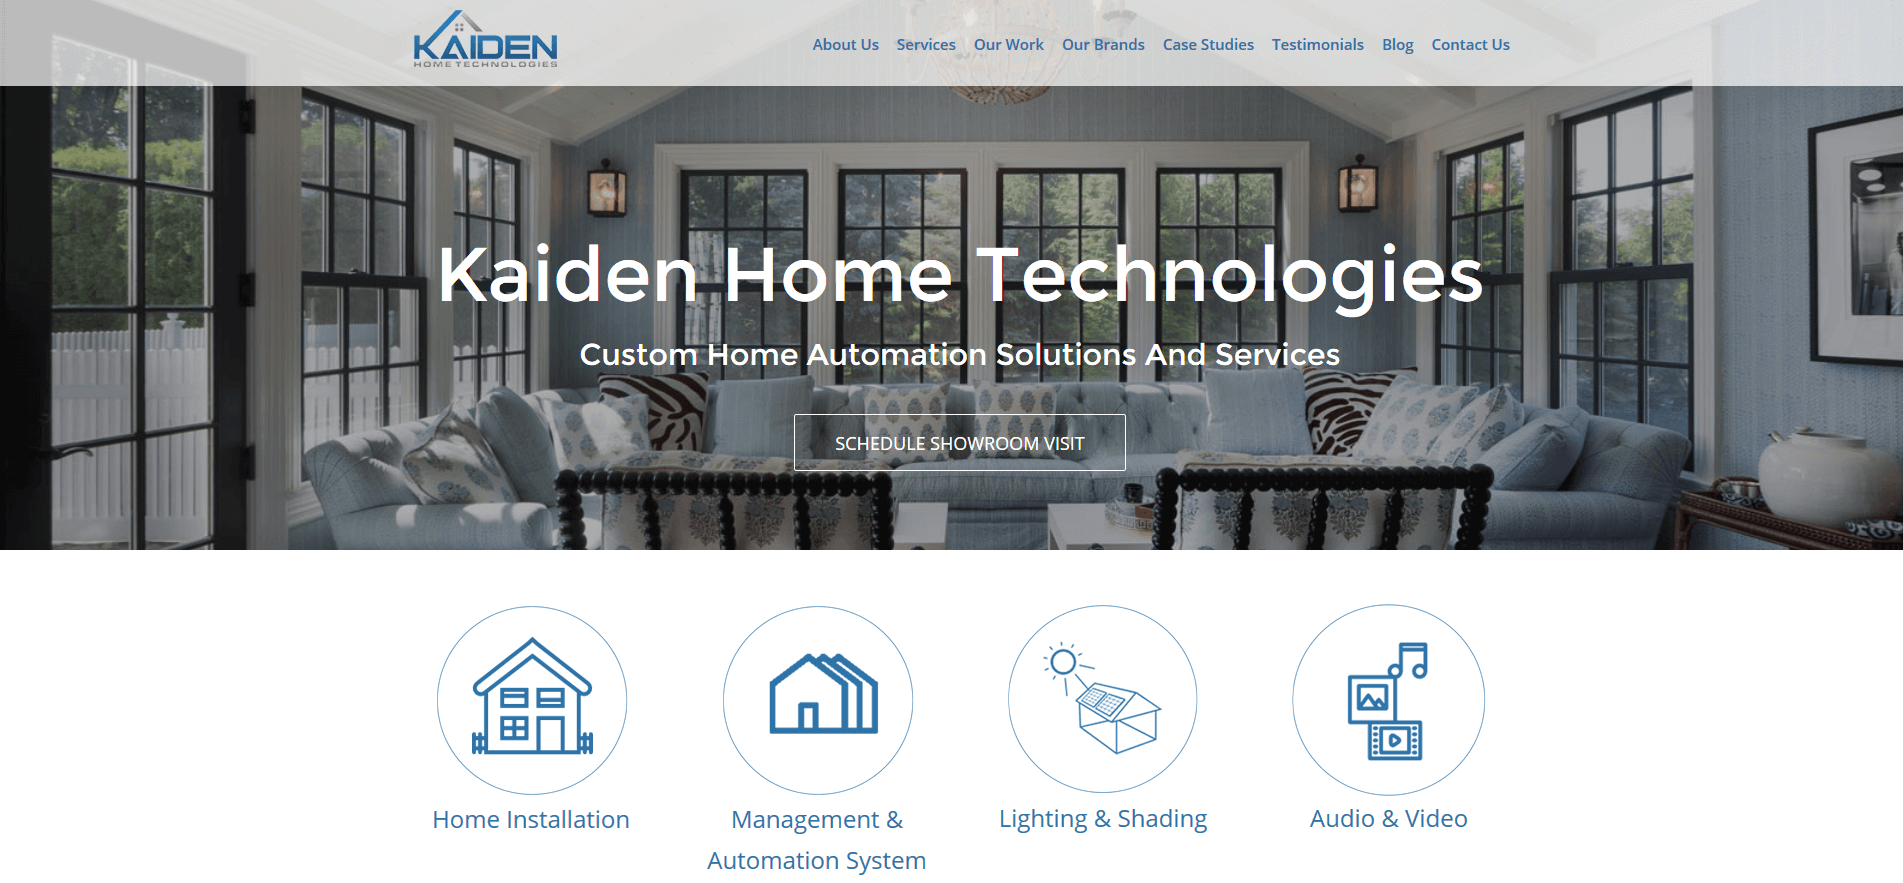 Kaiden Home Technologies